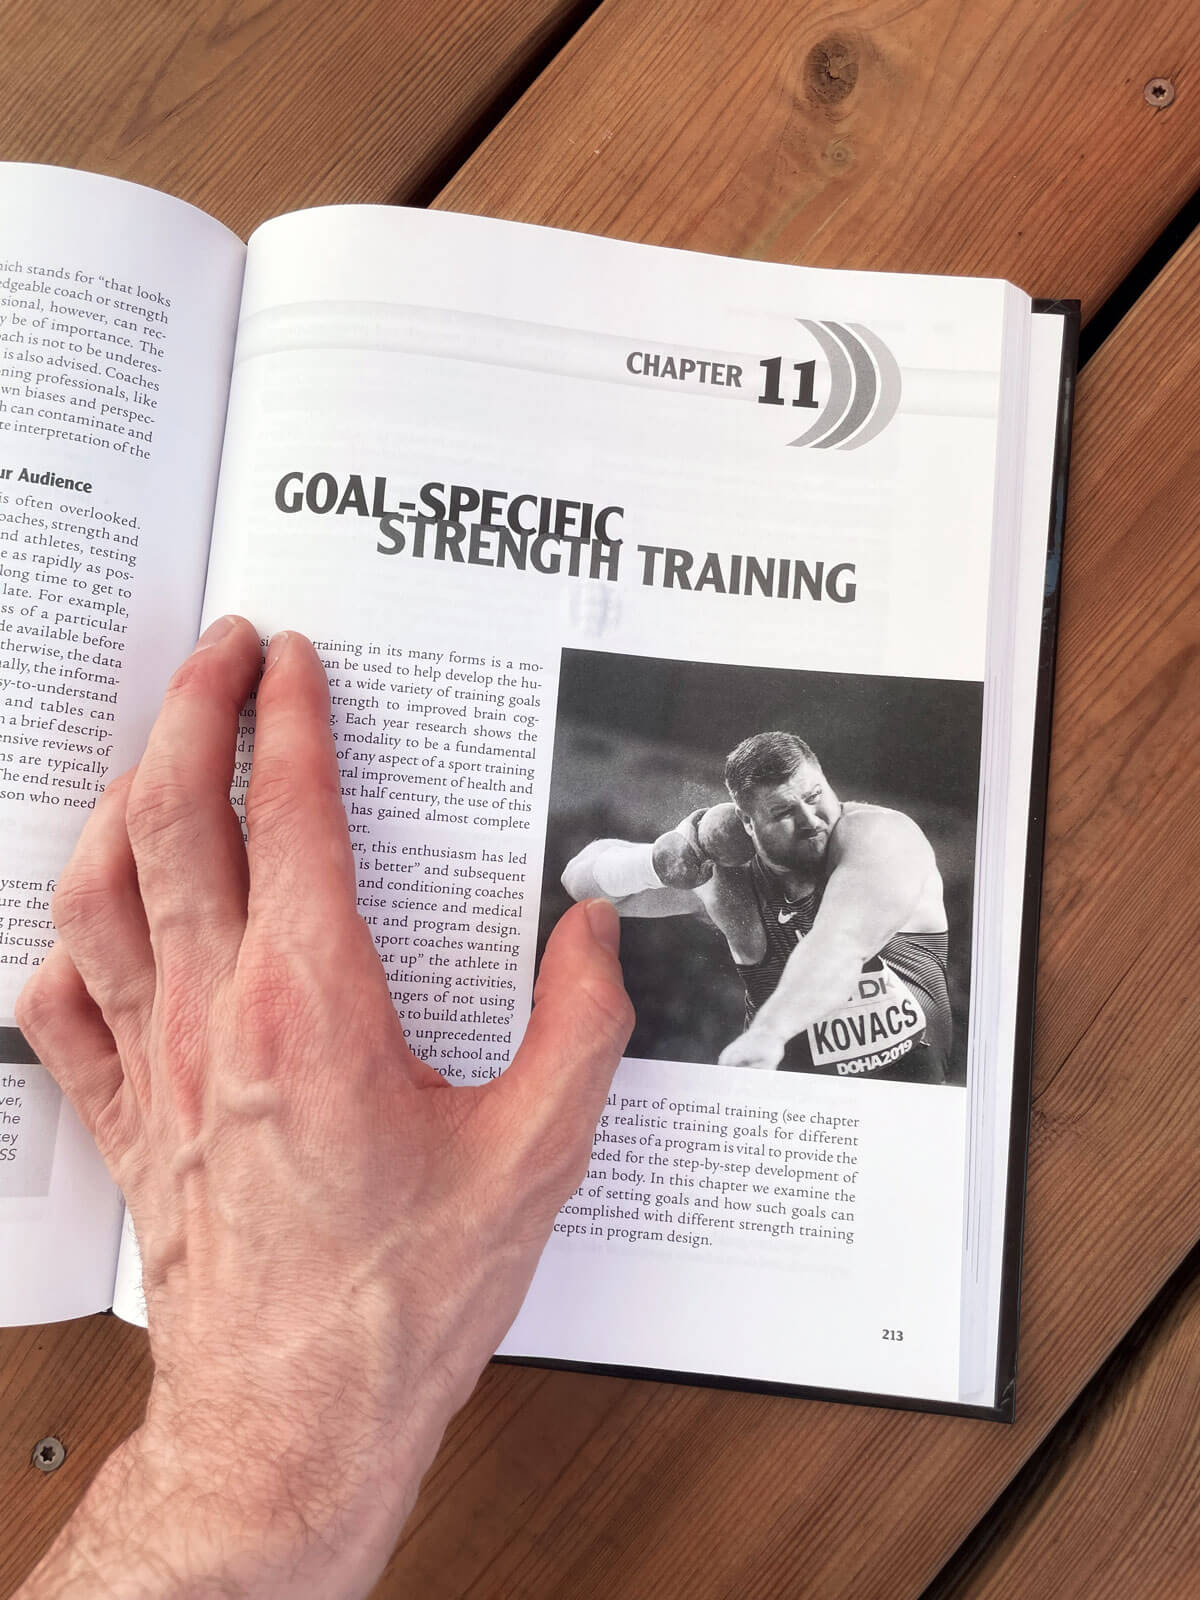 Science and Practice of Strength Training by Vladimir Zatsiorsky - Chapter 11